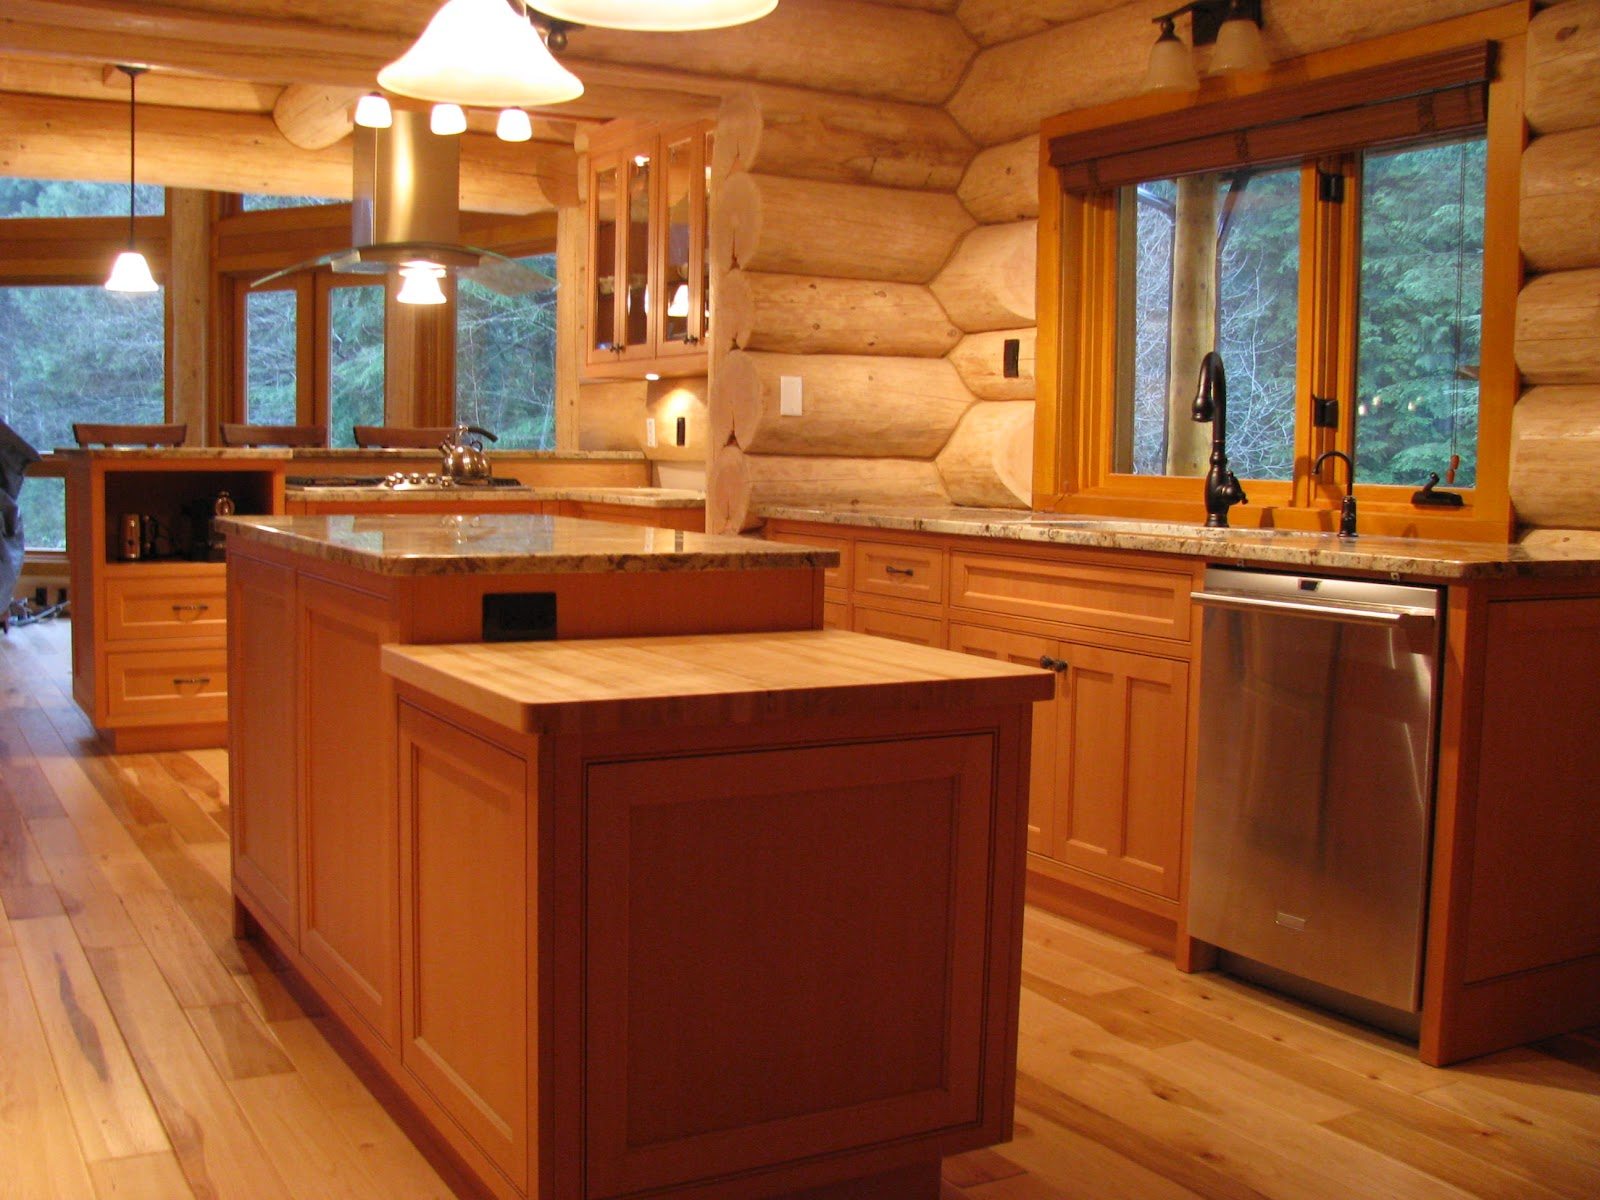 Simply beautiful kitchens the blog custom log home for Home kitchen